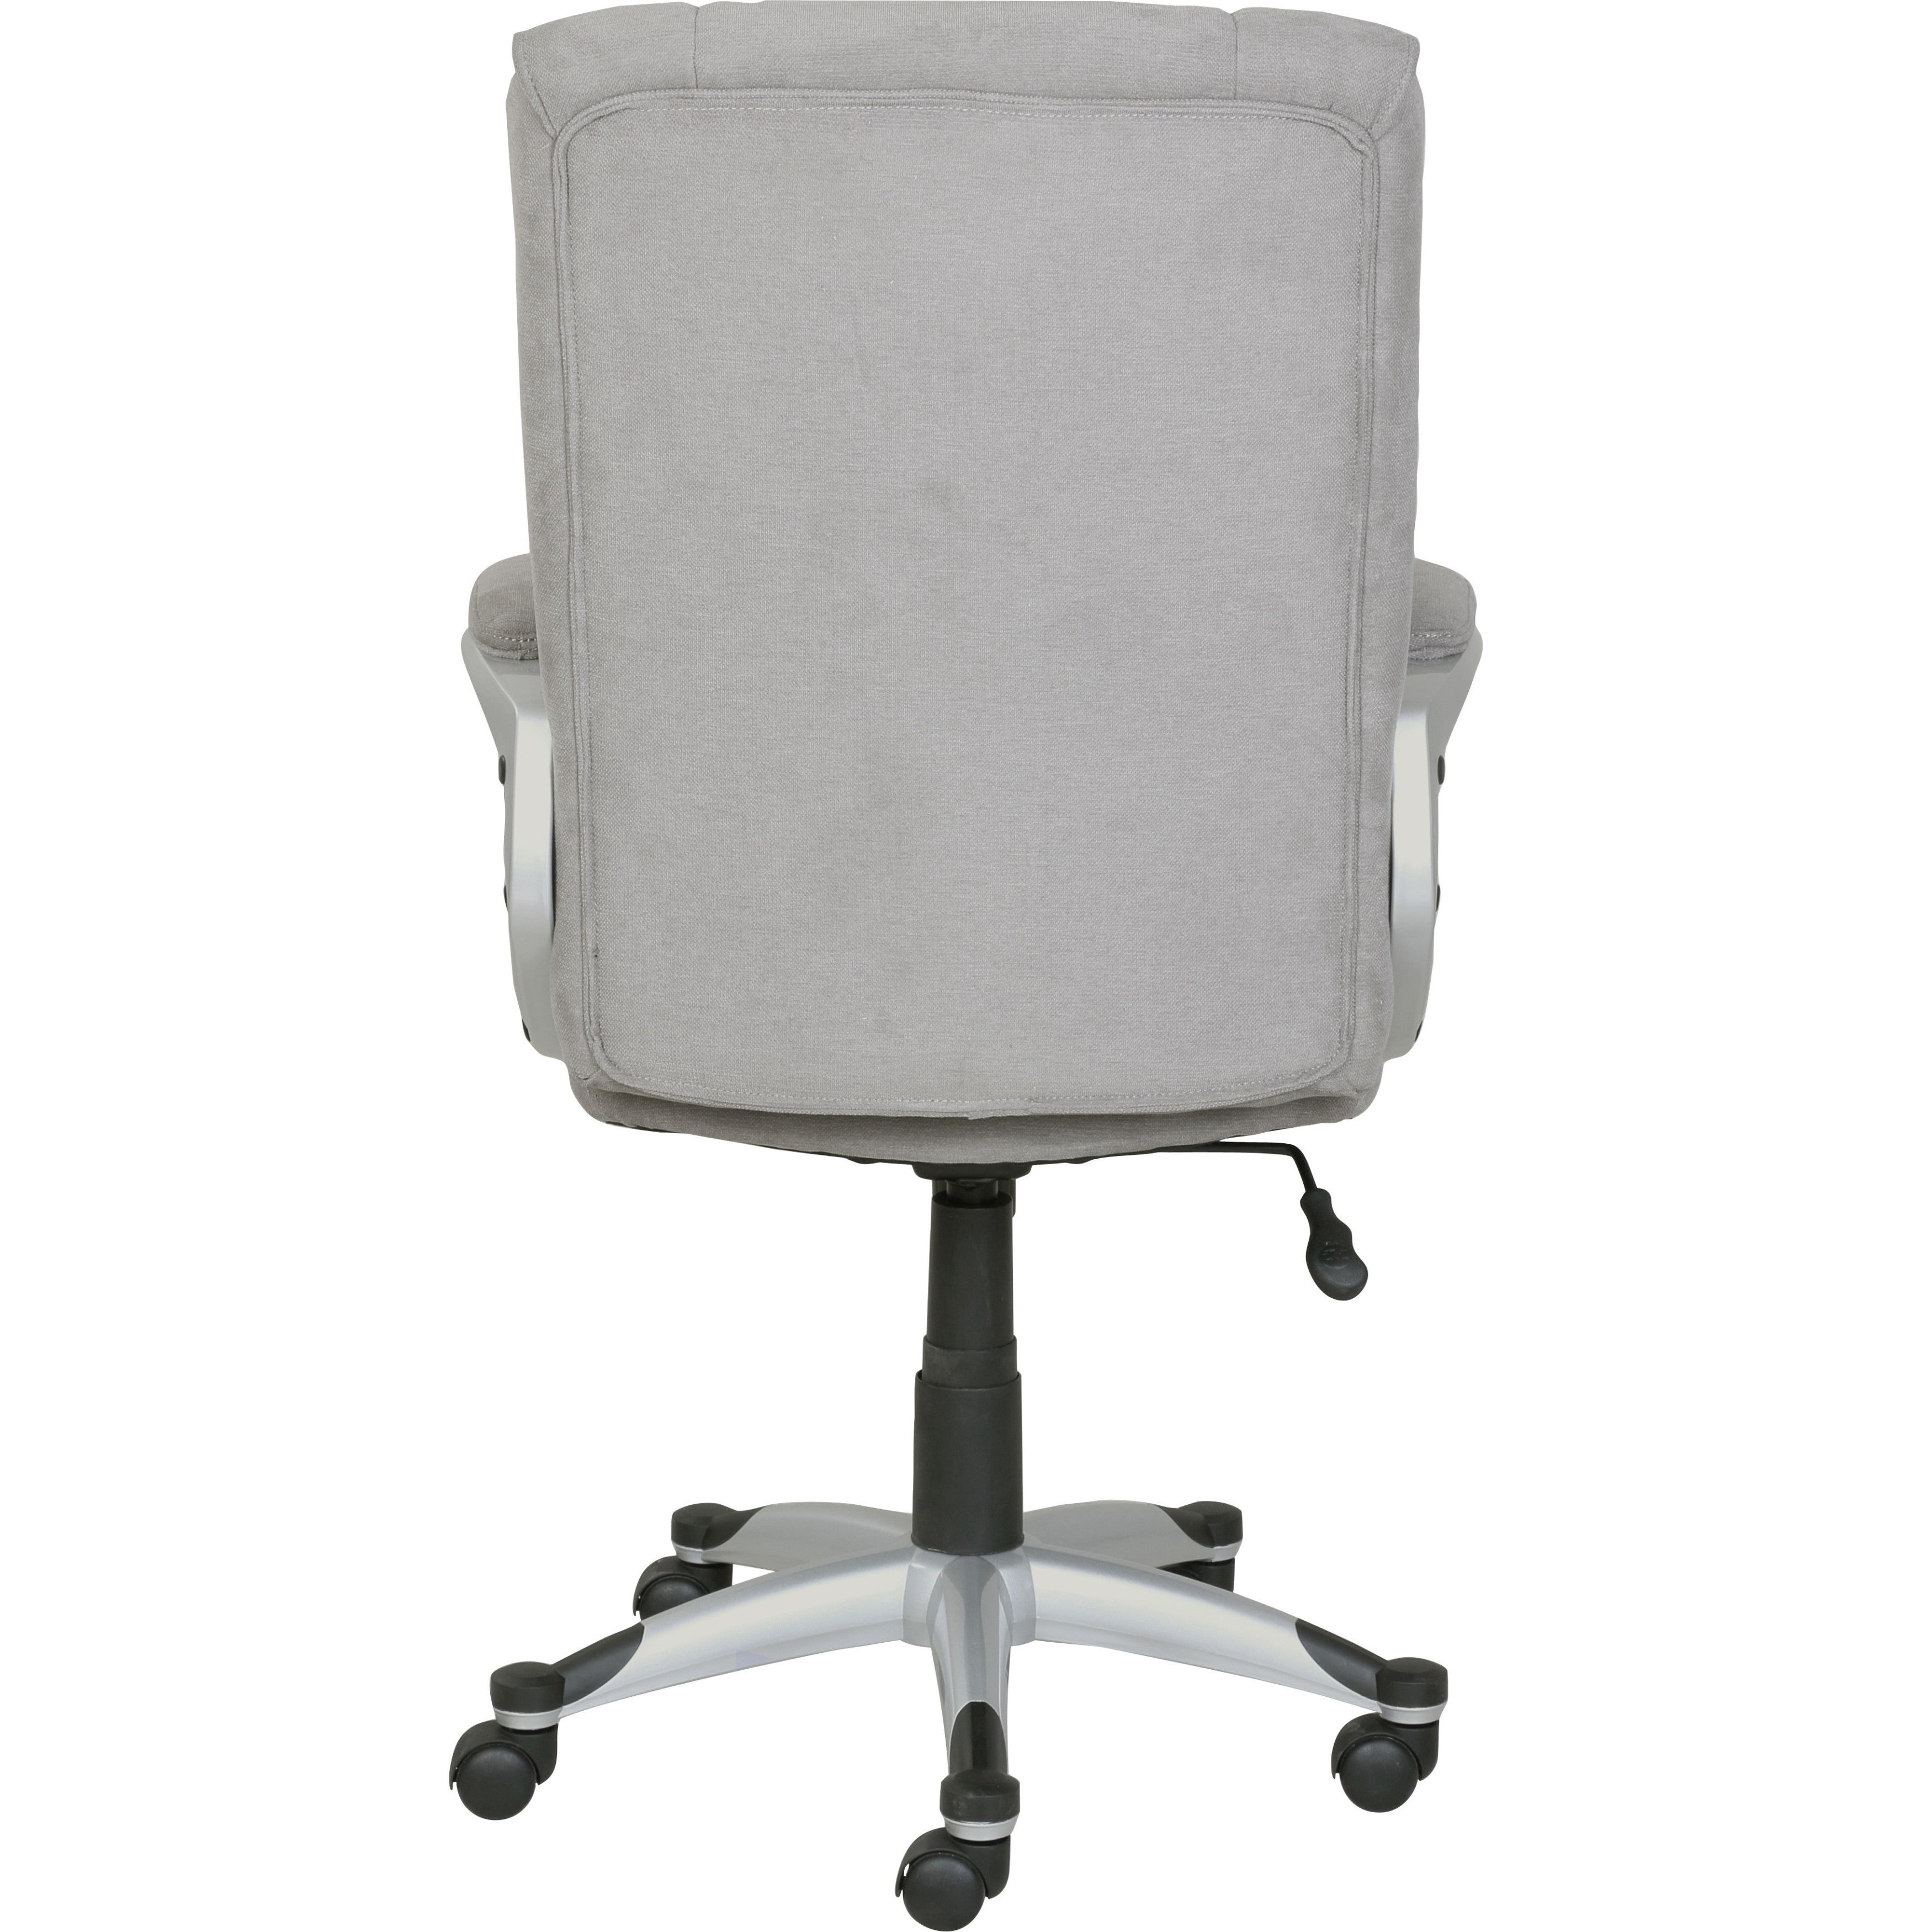 wellness chairs chair serta galleries style active true cool interesting office desk lumbar parts